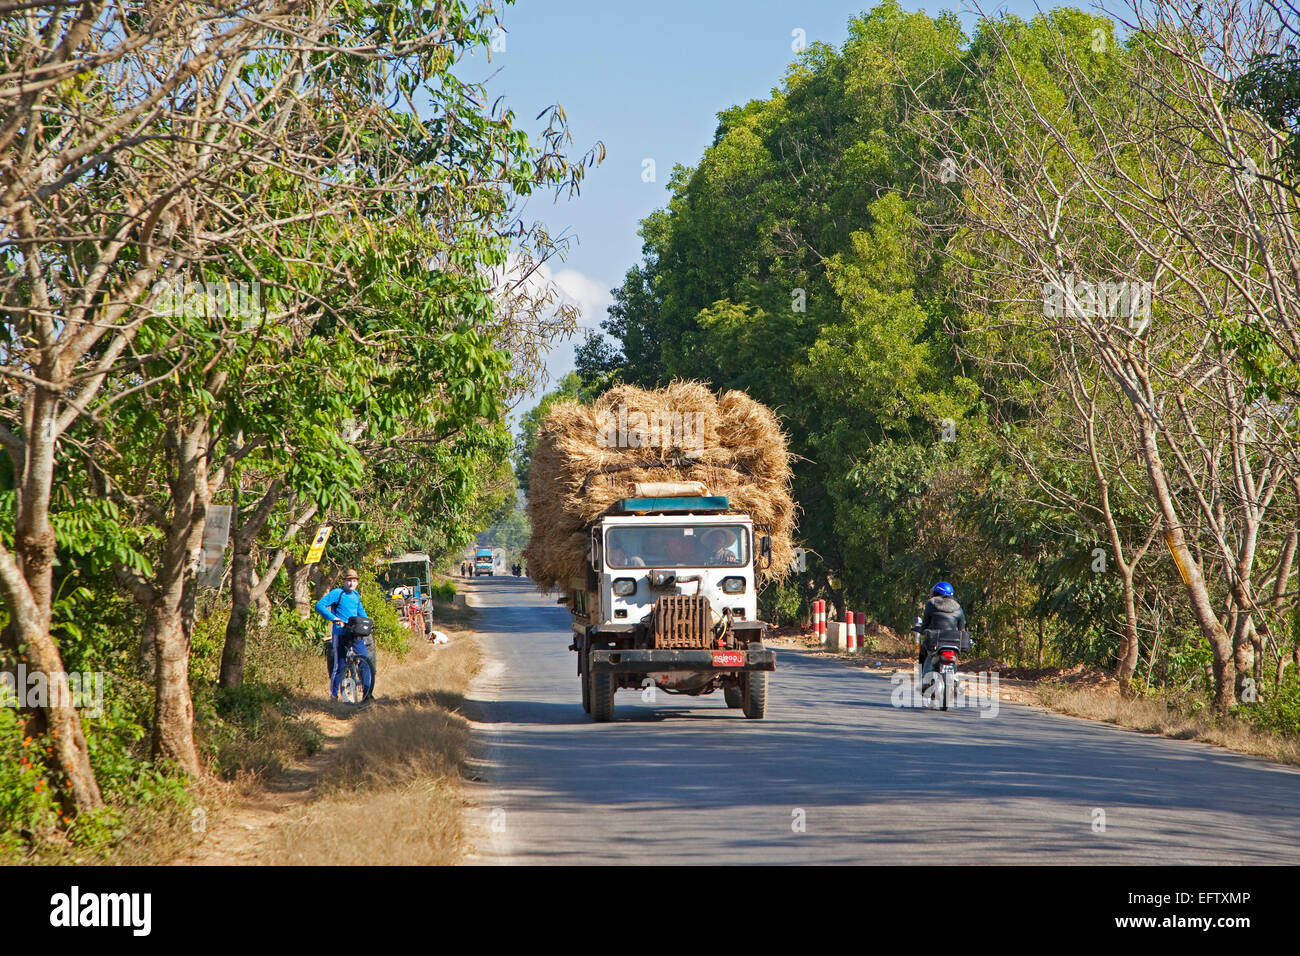 Heavily loaded truck transporting hay, Taunggyi District, Shan State, Myanmar / Burma - Stock Image